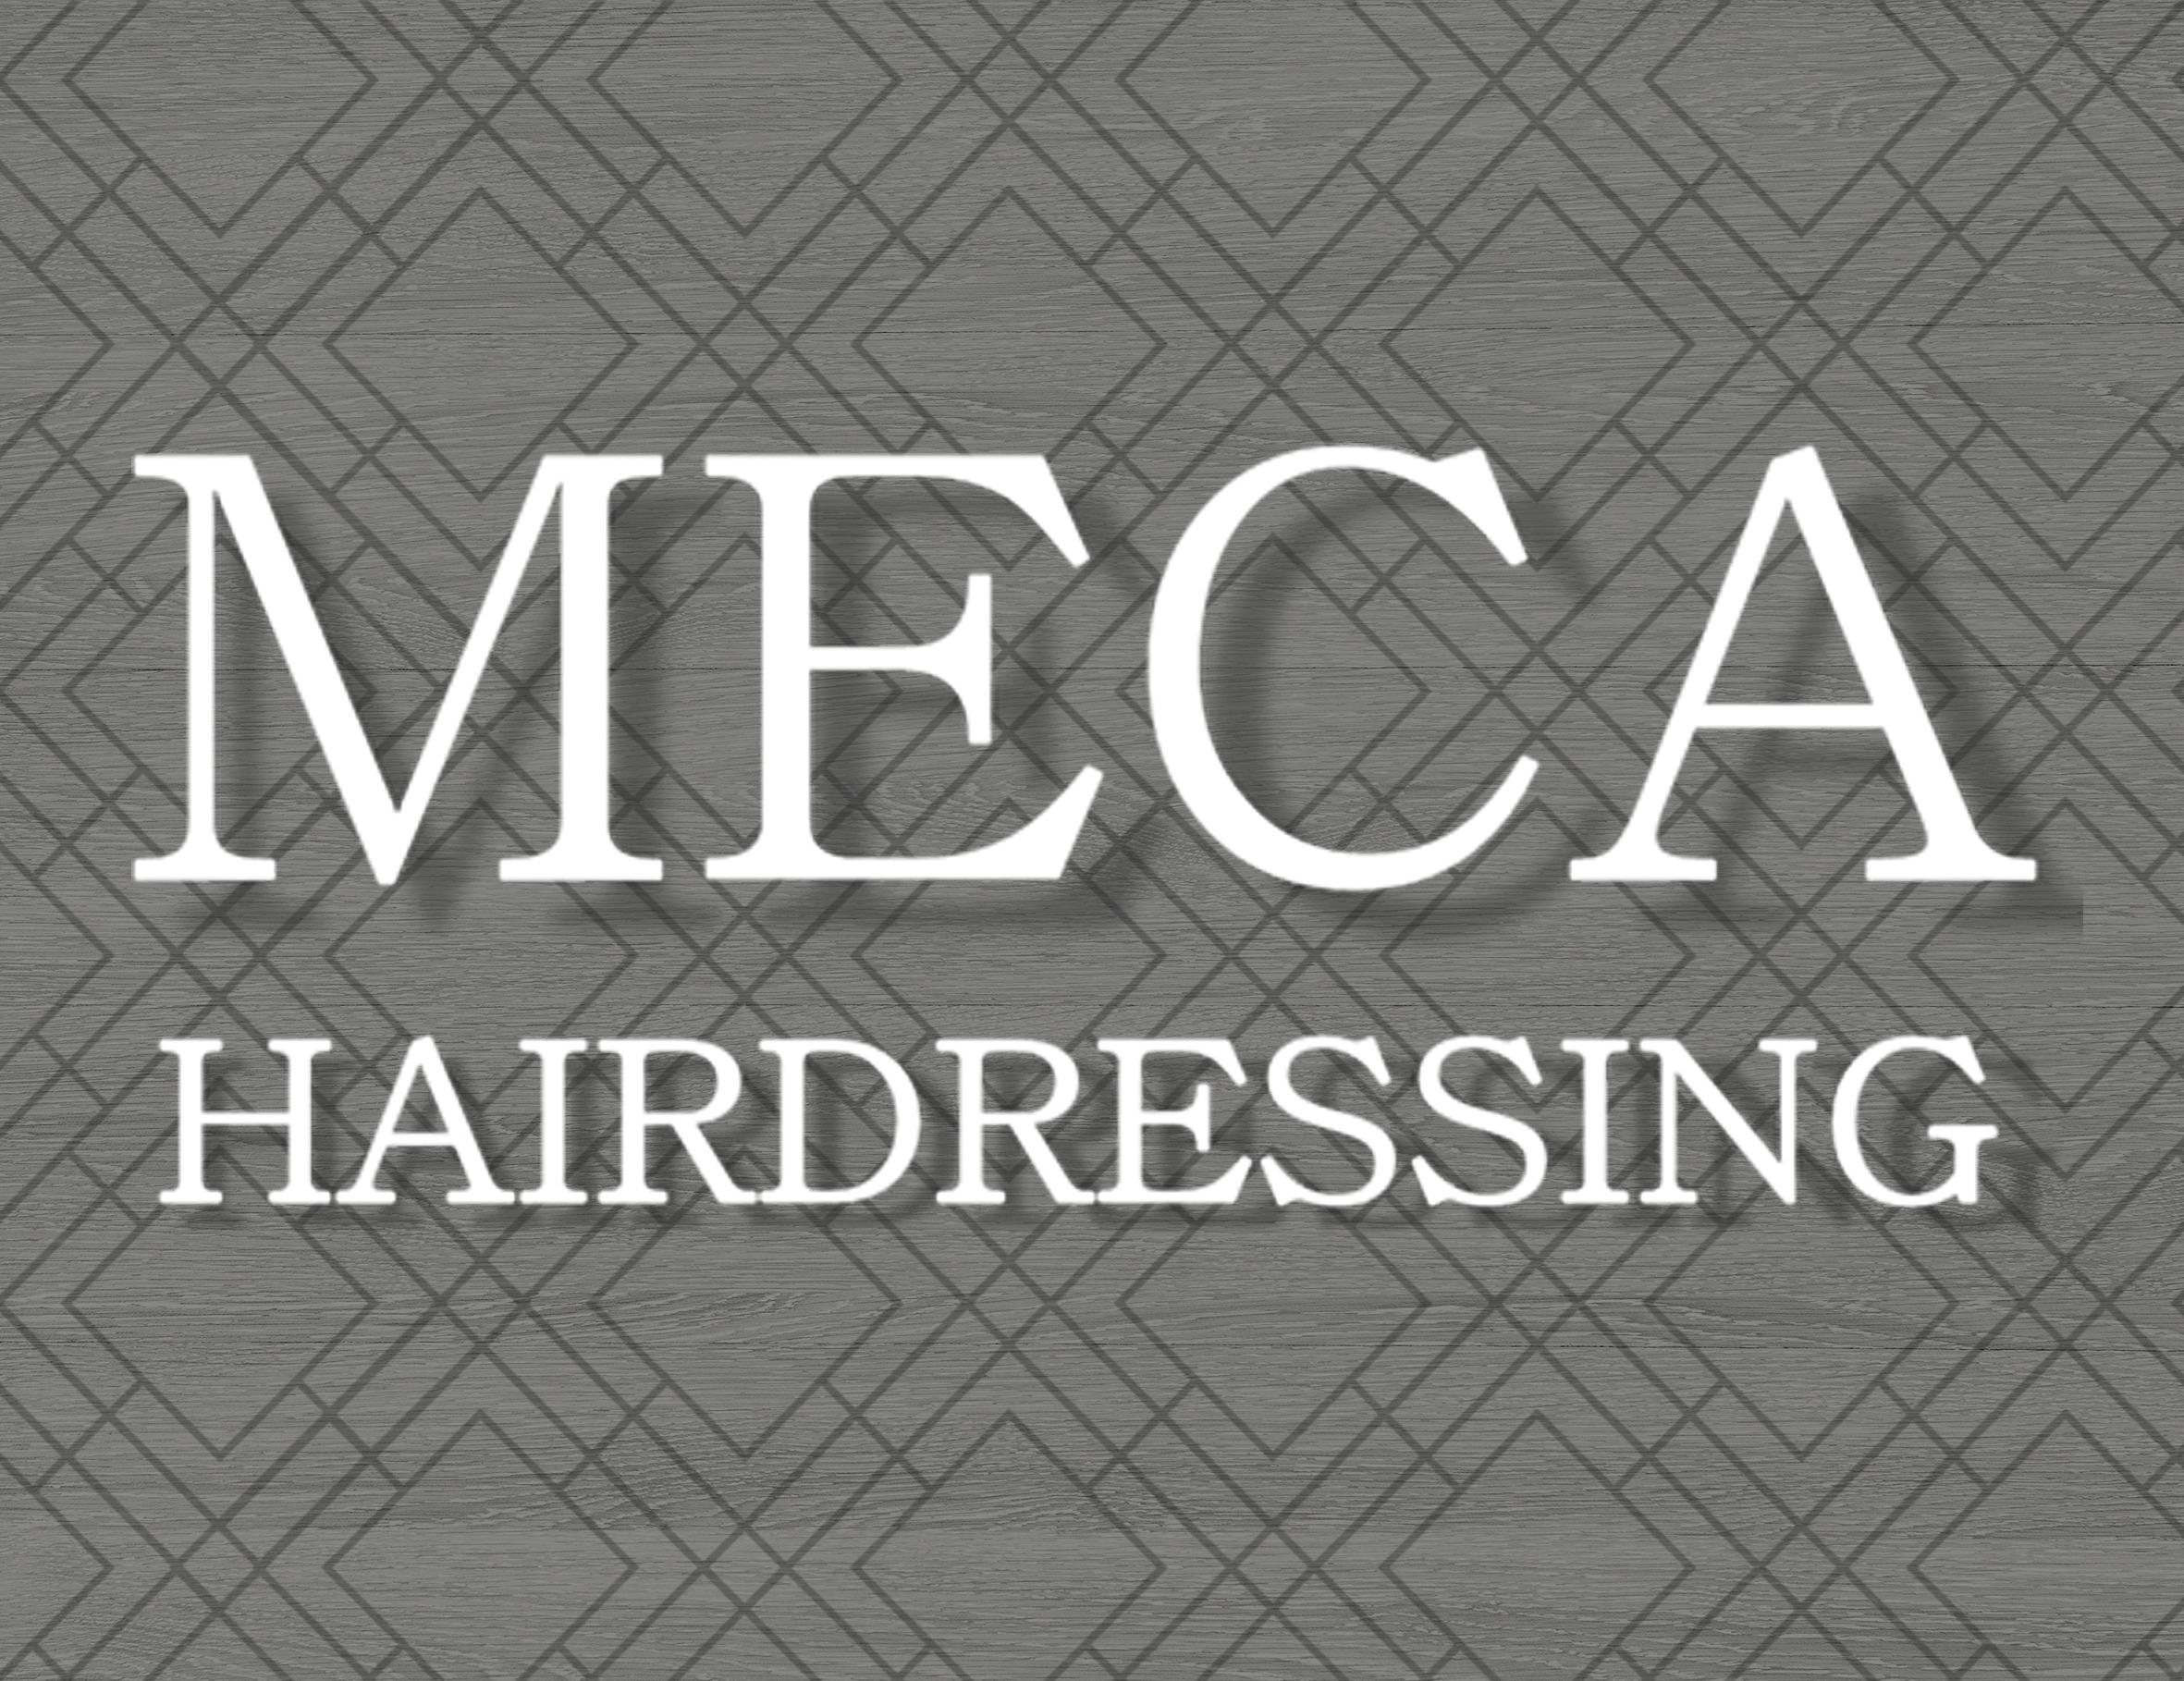 Meca Hairdressing